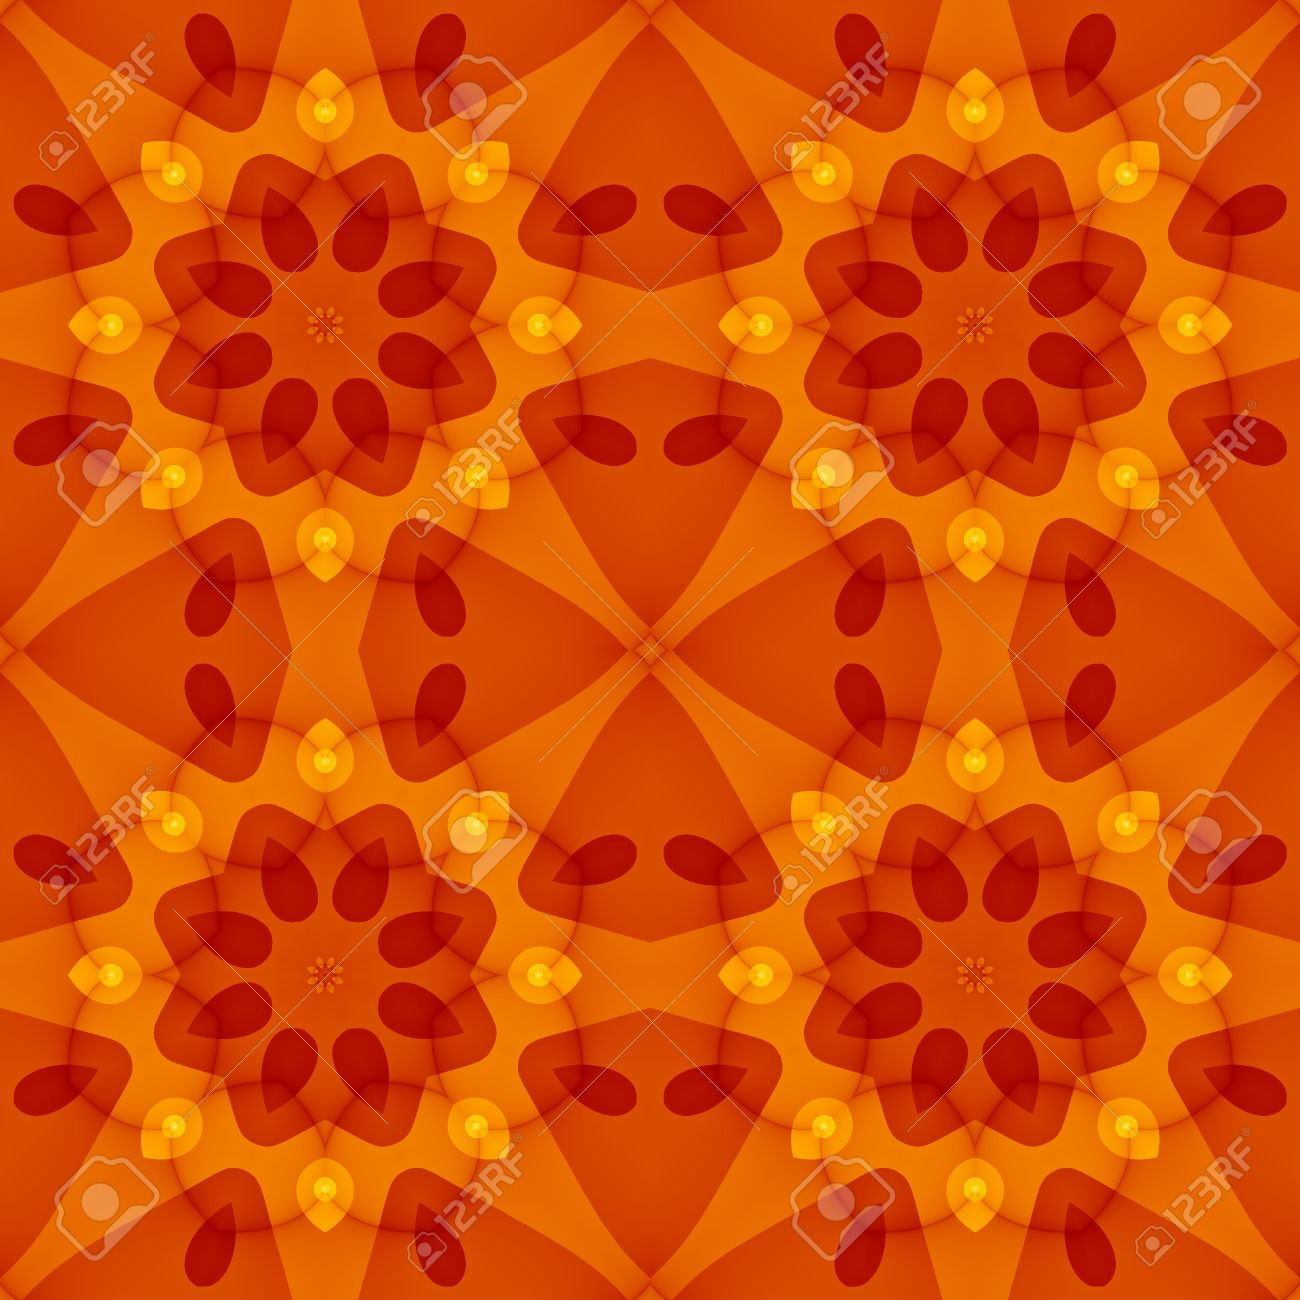 Seamless Texture With A Warm Orange Red Floral Pattern. For Print On  Textiles, Bed